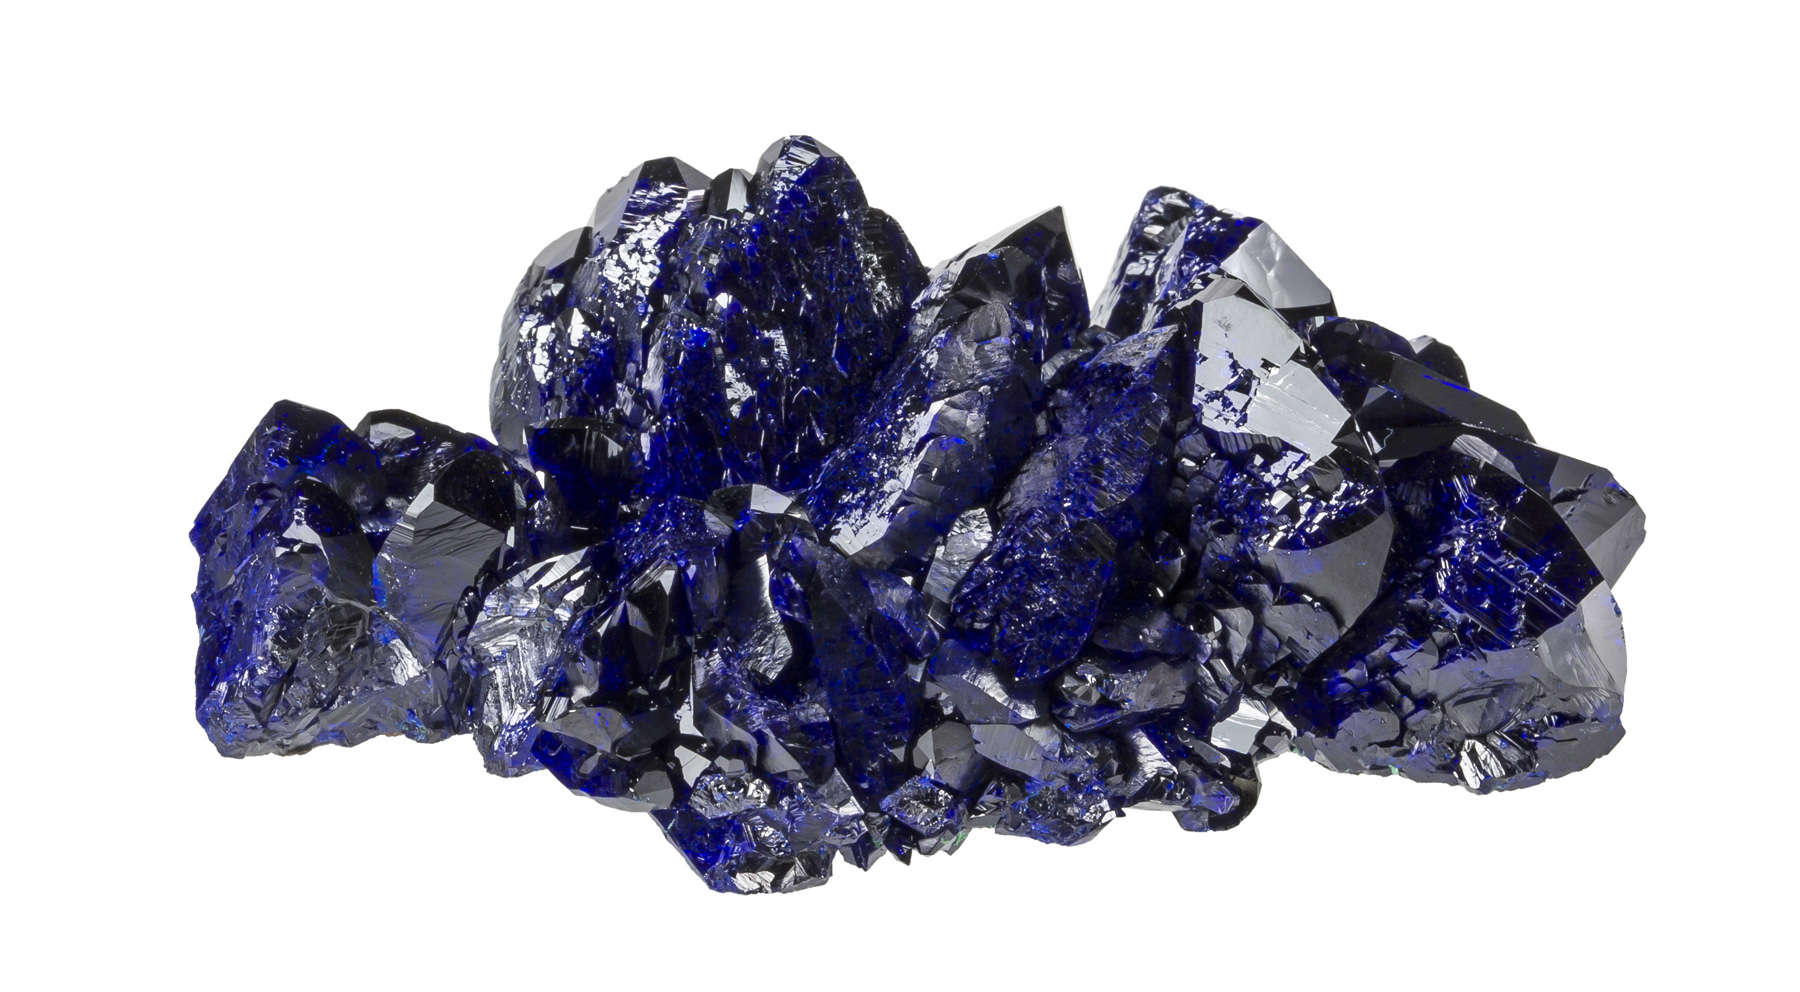 The bright electric blue really makes specimen shine gives real wow